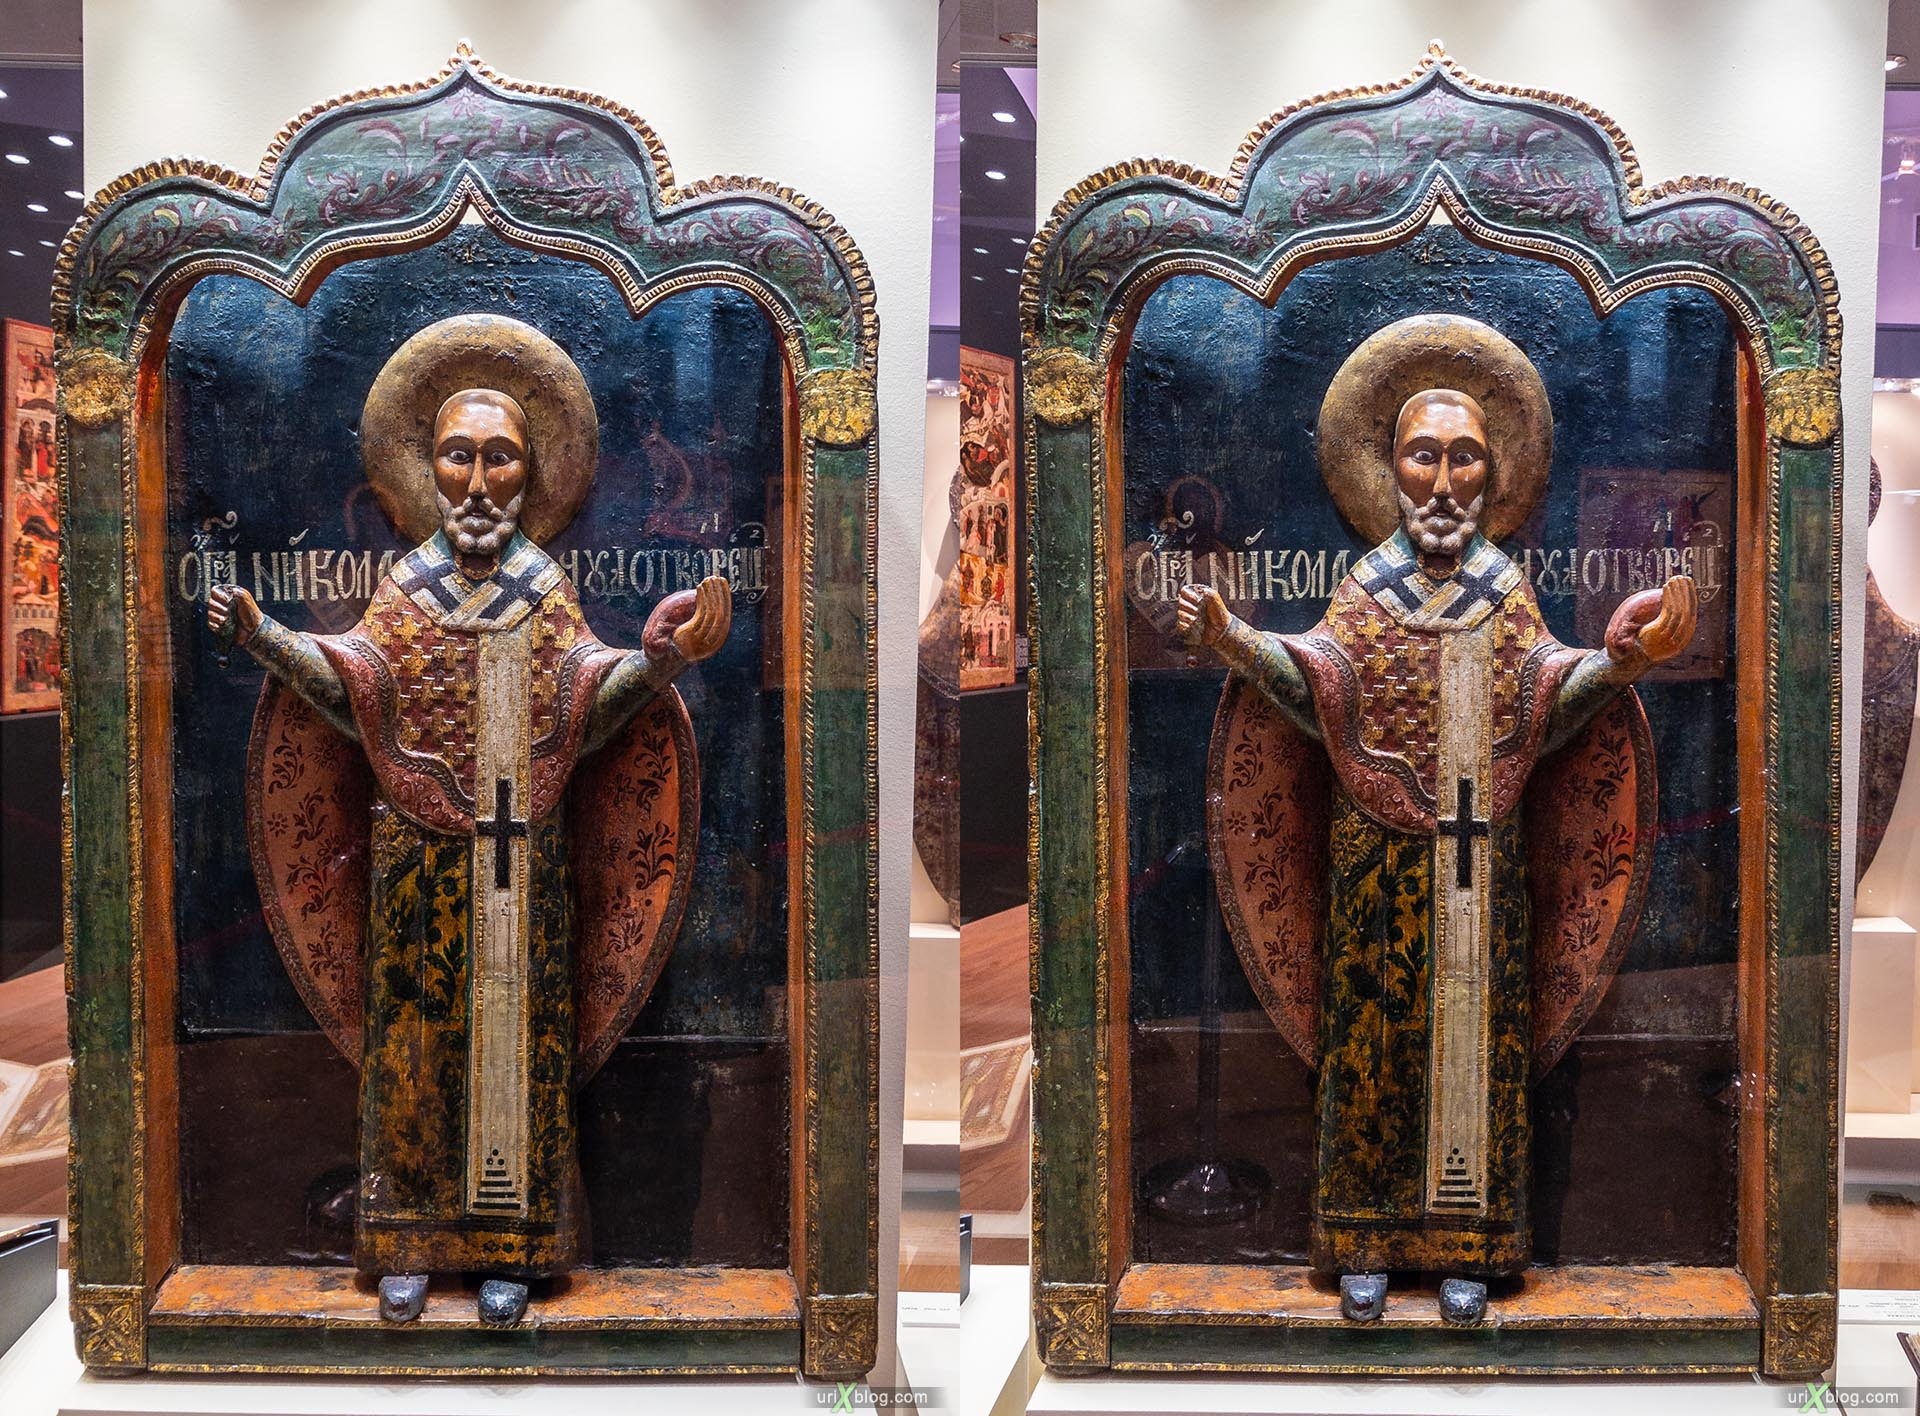 exhibition, Russian North, State Historical museum, Moscow, Russia, 3D, stereo pair, cross-eyed, crossview, cross view stereo pair, stereoscopic